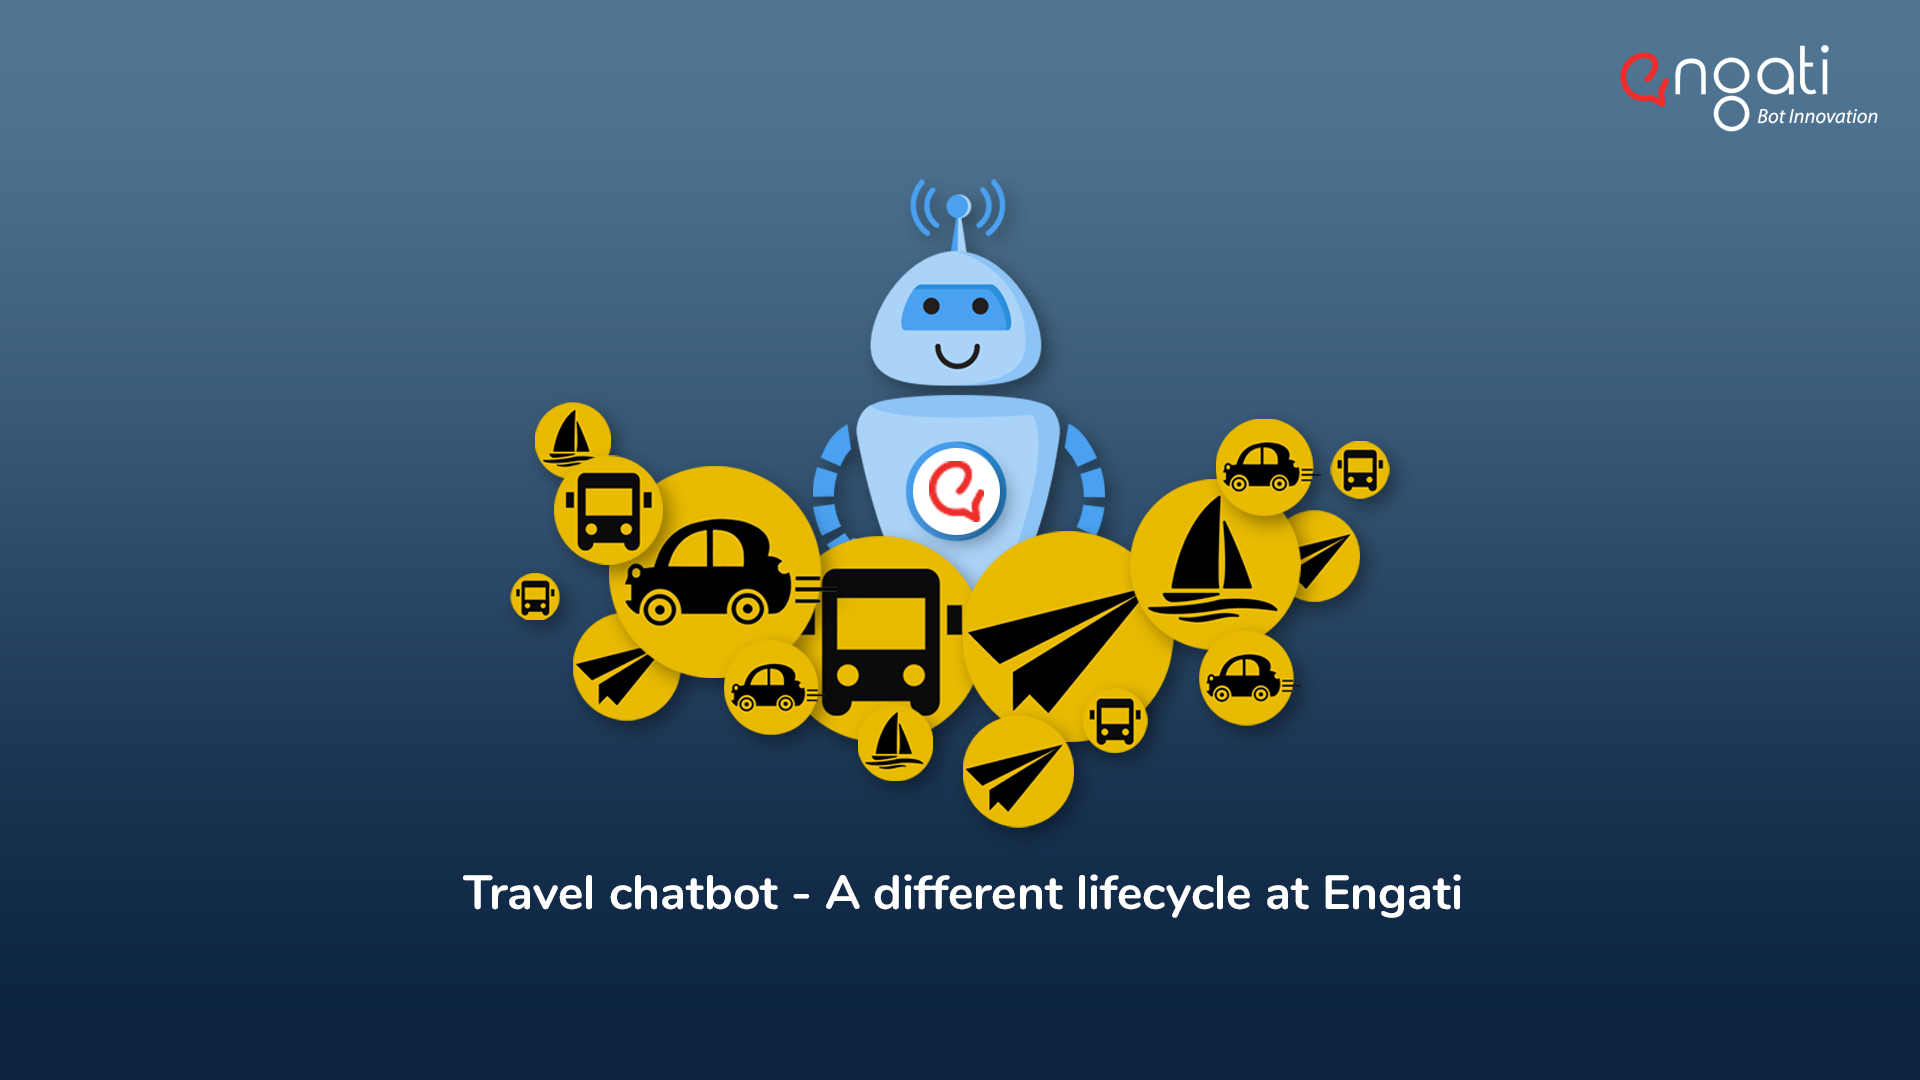 Travel chatbot - A different lifecycle at Engati